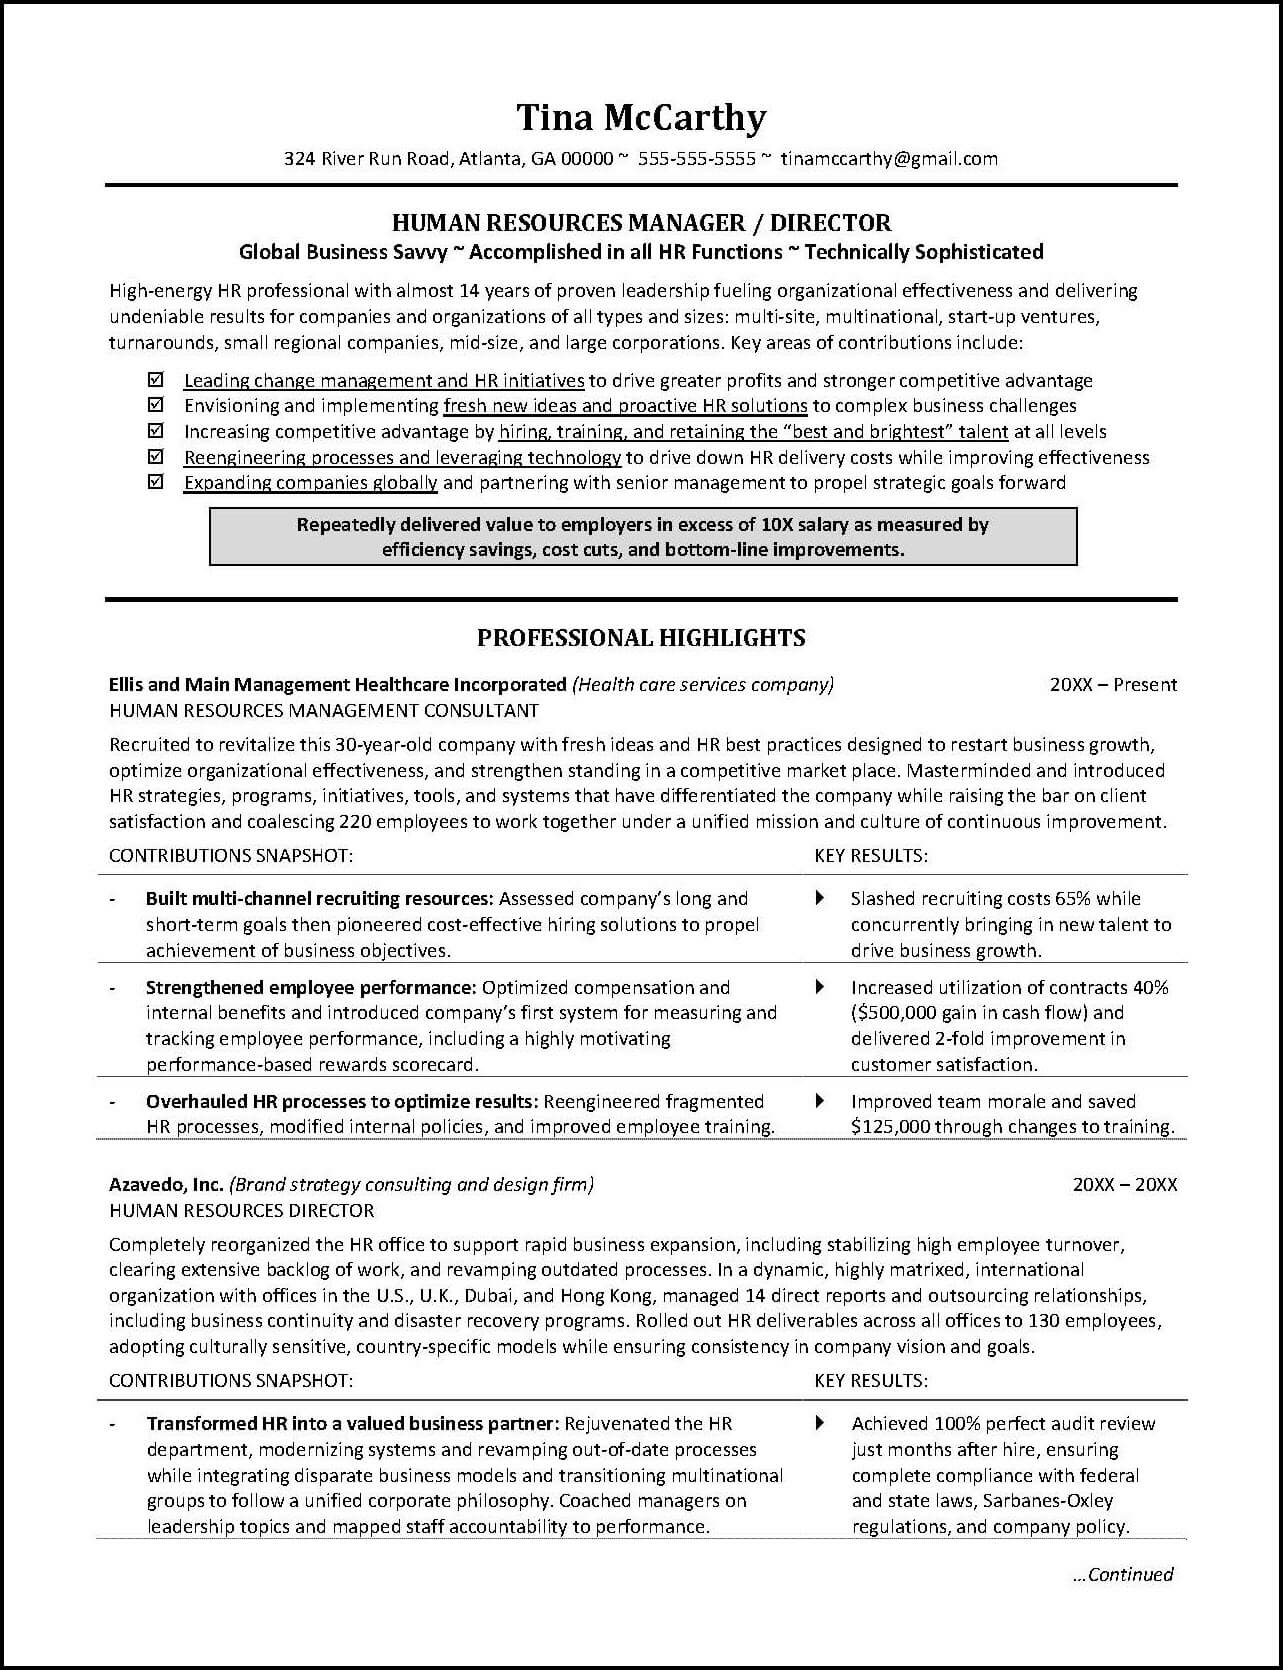 Merveilleux This Sample Human Resources Resume Is Just An Example To Show The Quality  And Style Of Our Professional Resume Writing Services.